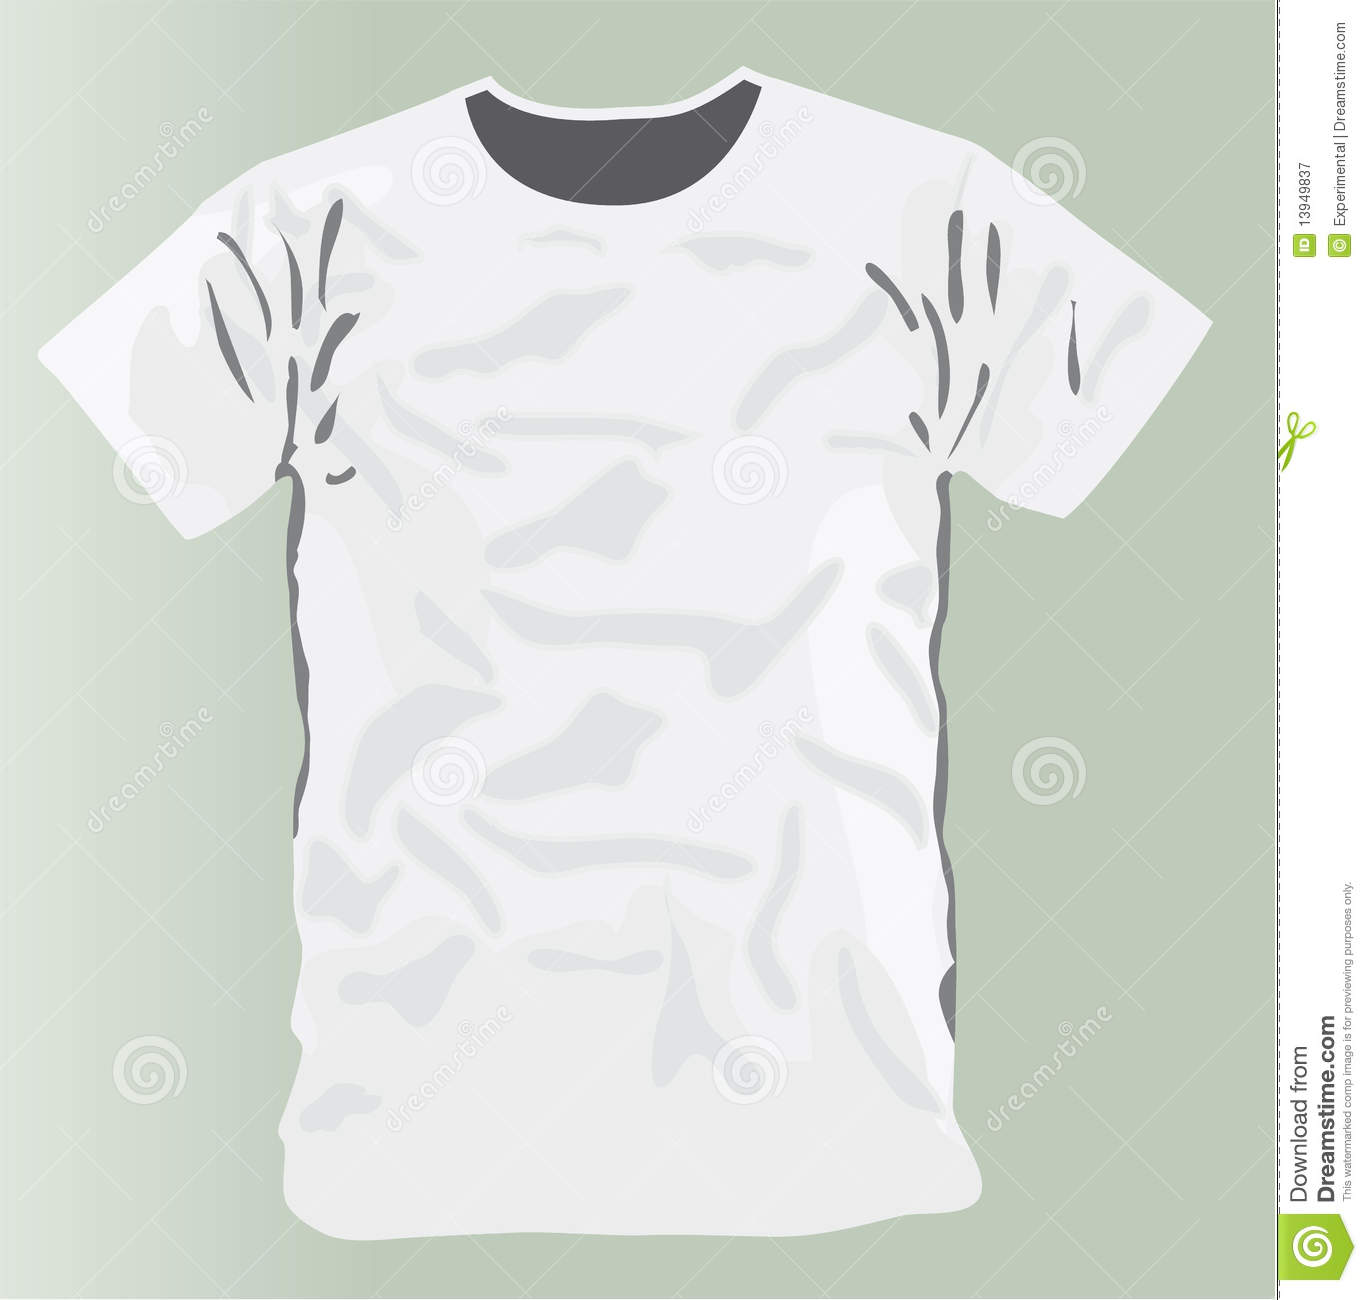 white t shirt design template royalty free stock photography image